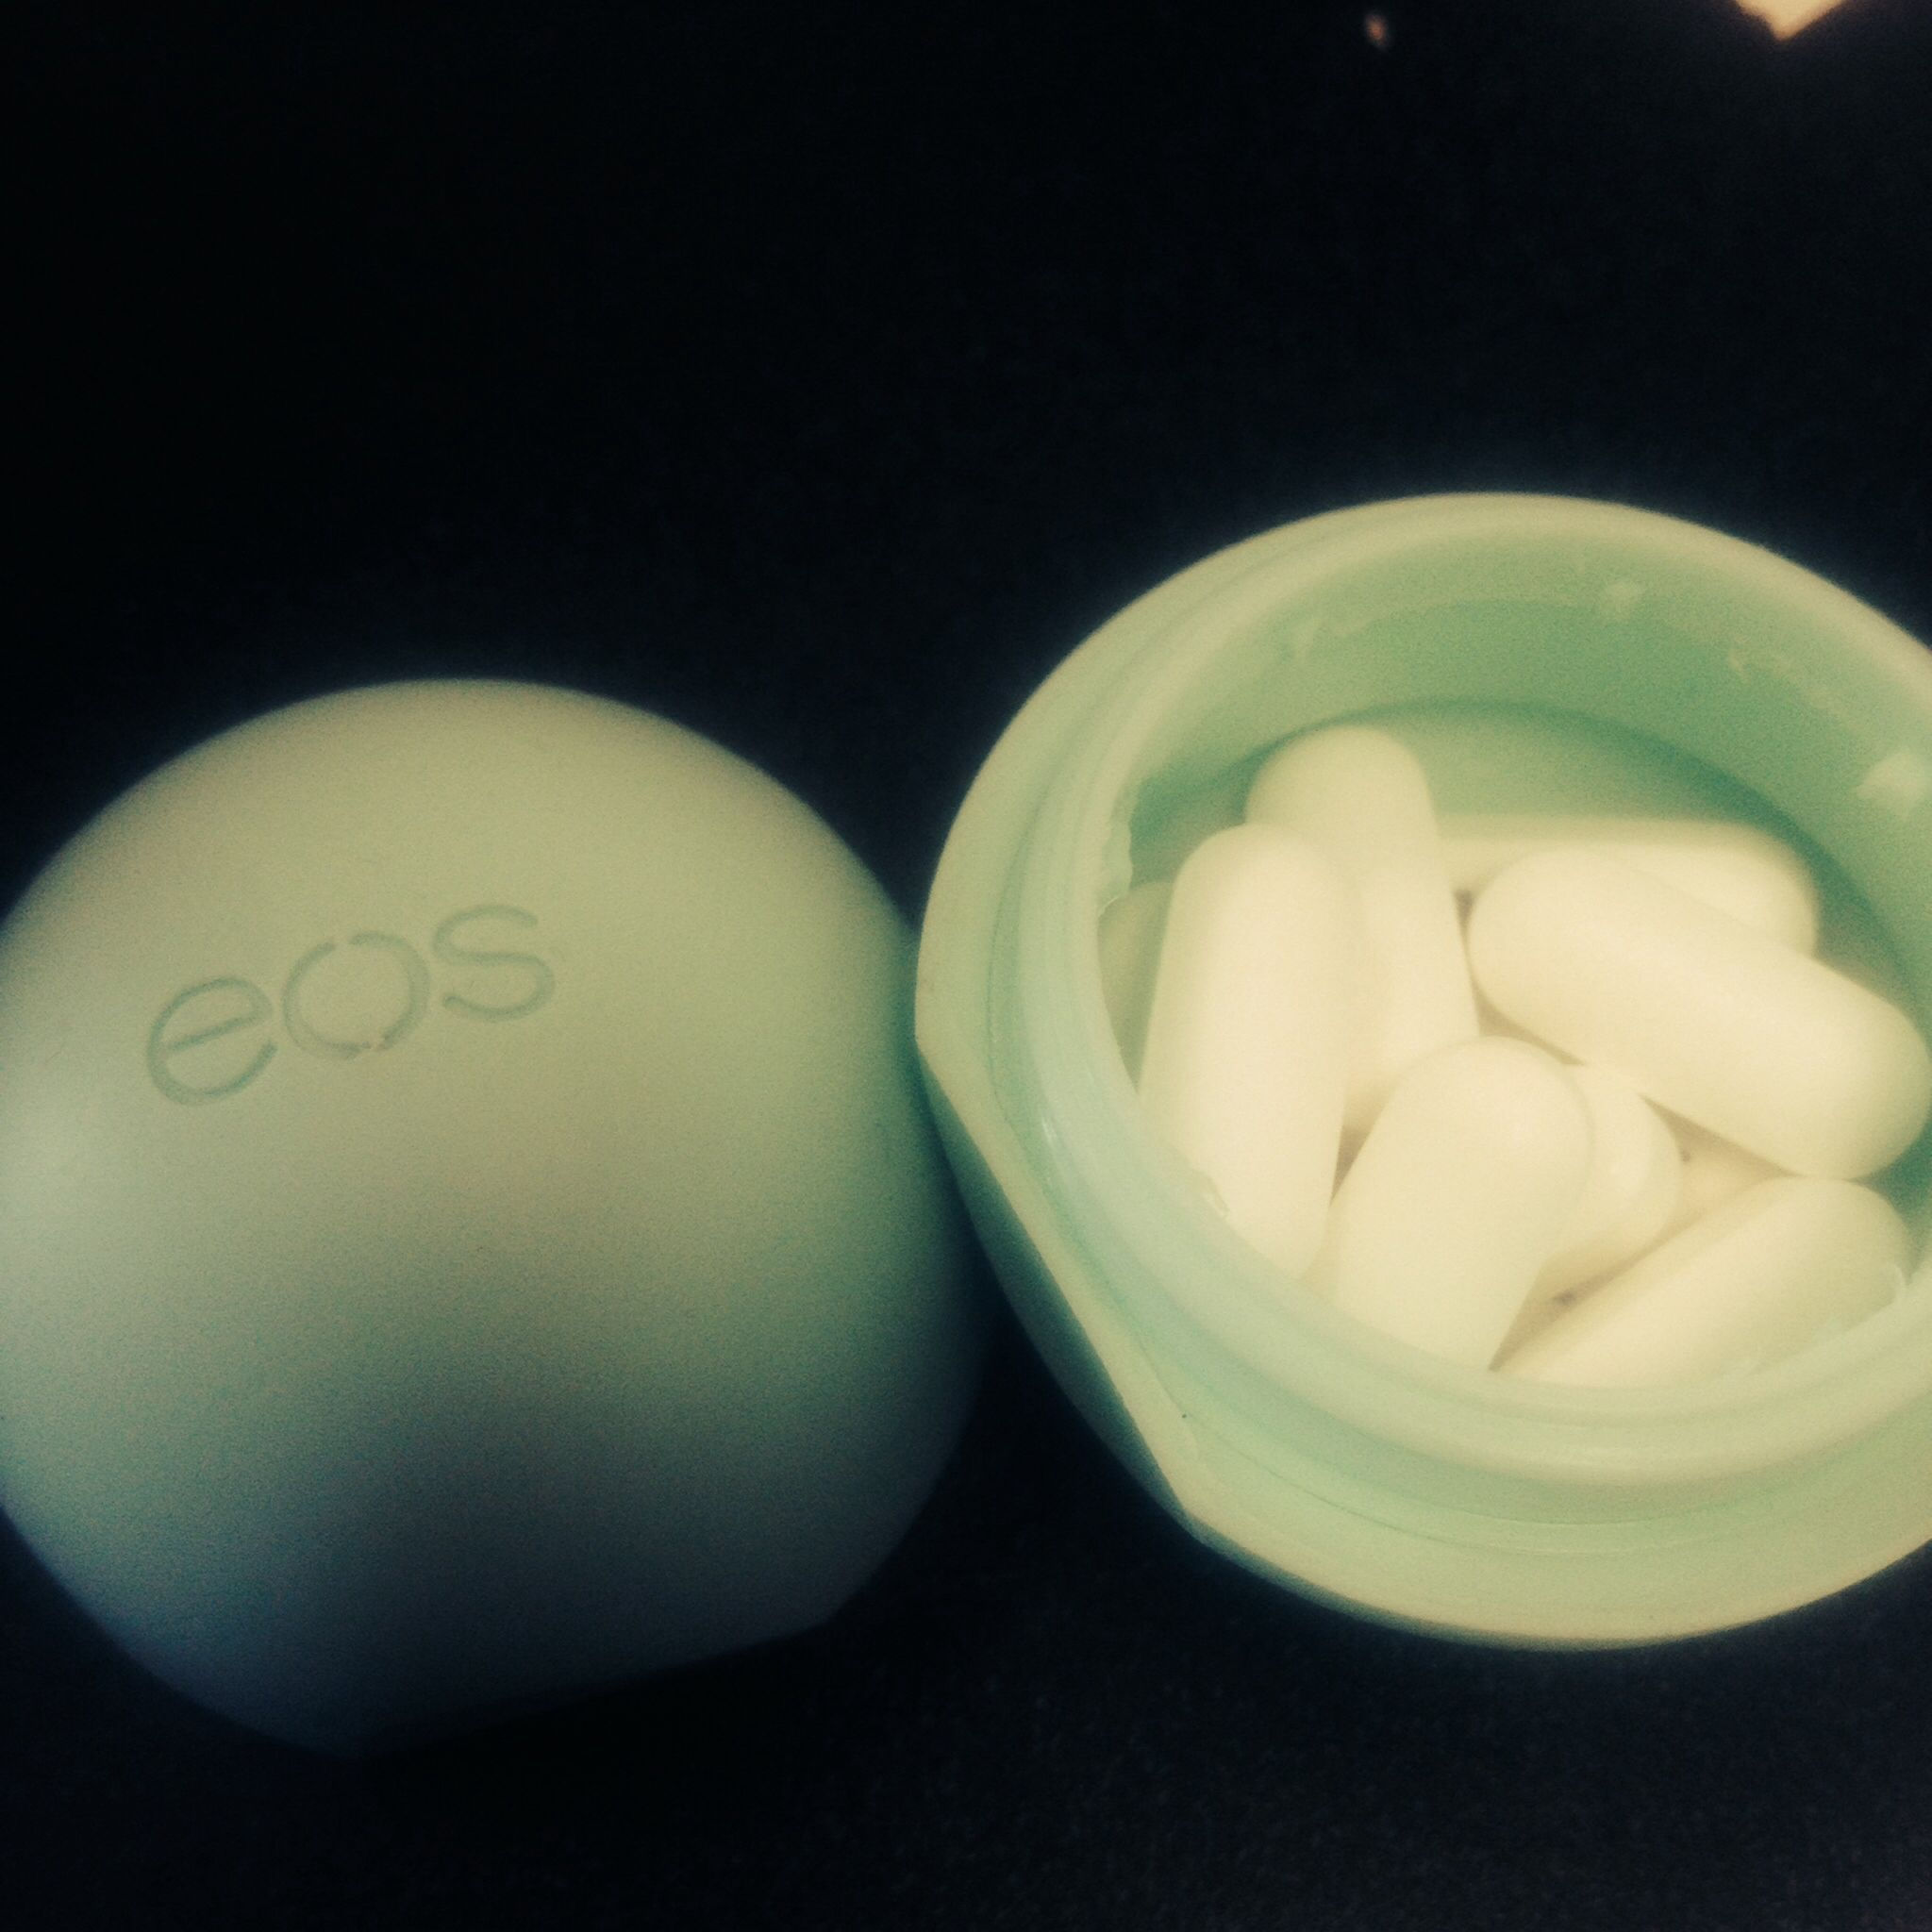 Balm christmas gift turn old eos containers into cool crafts ideas - Re Use Eos Lip Balm Container For Pill Holder